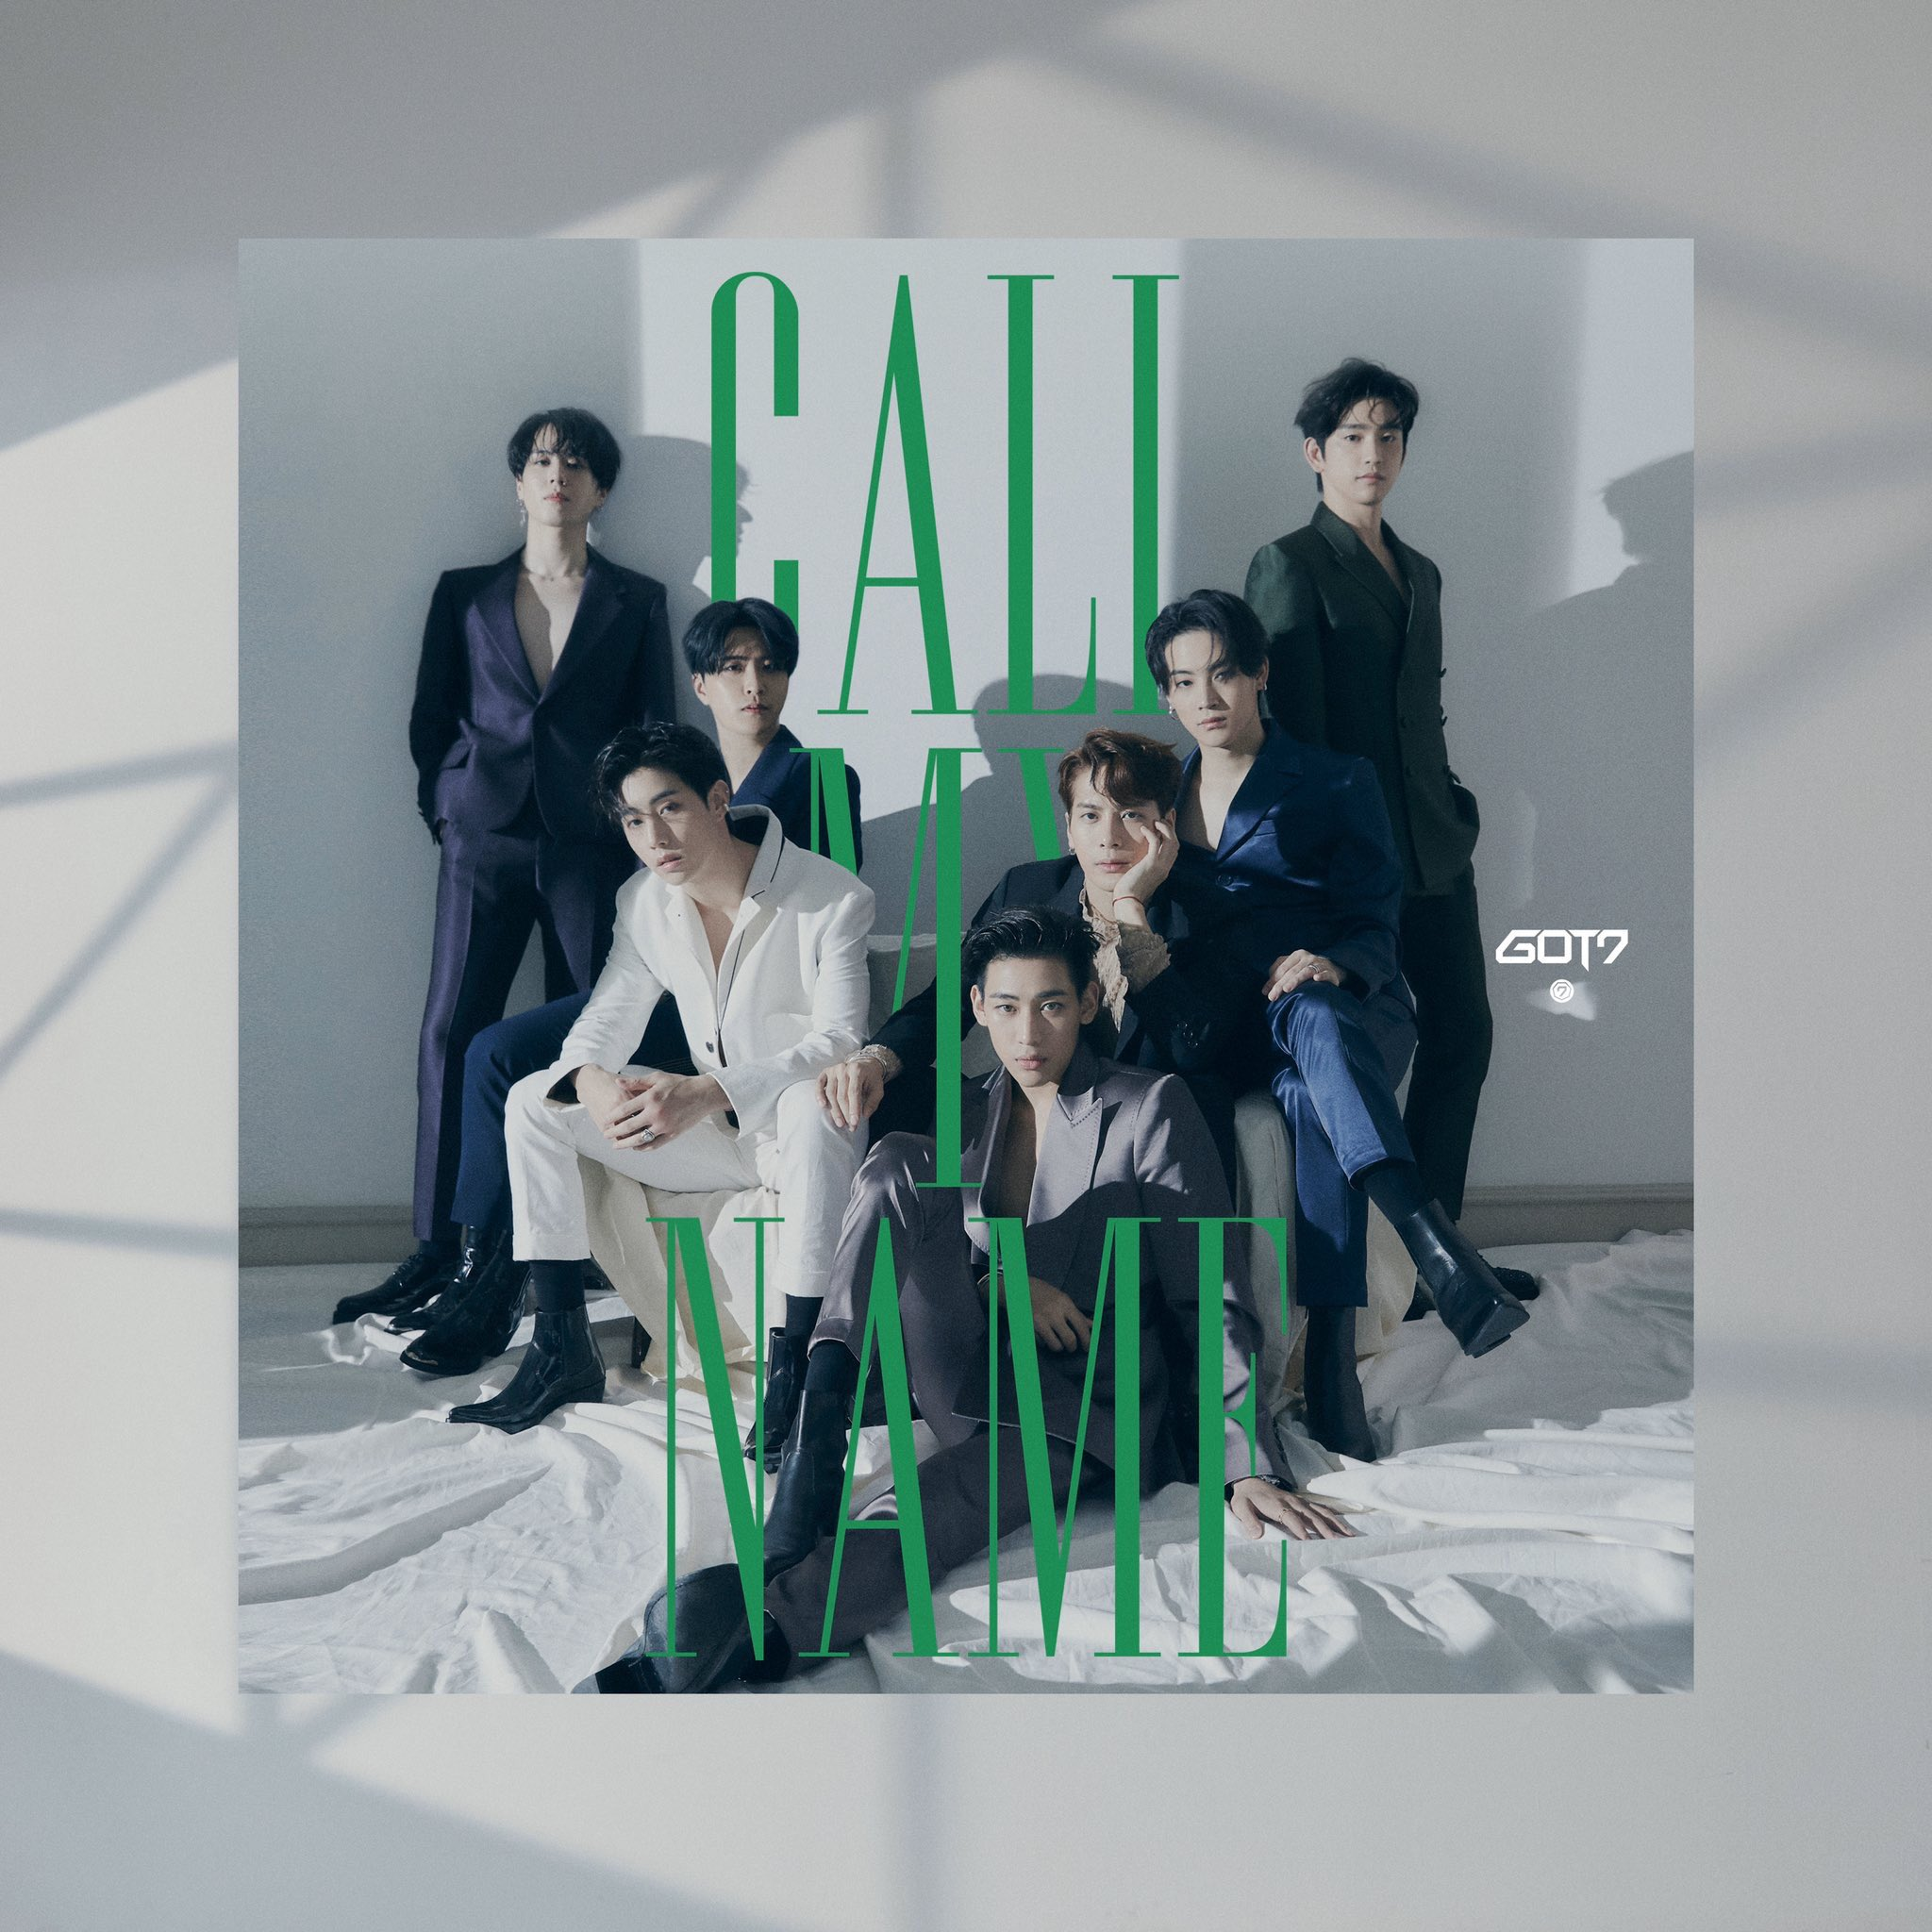 "🐥Hiong🤘 on Twitter: ""GOT7 "" Call My Name"" M/V 刷起來!!! https://t.co/EXE0W9ZMPG #GOT7 #갓세븐 @GOT7Official #GOT7_CallMyName #GOT7_니가부르는나의이름 #GOT7_YouCallingMyName… https://t.co/Vmo10fnWXk"""